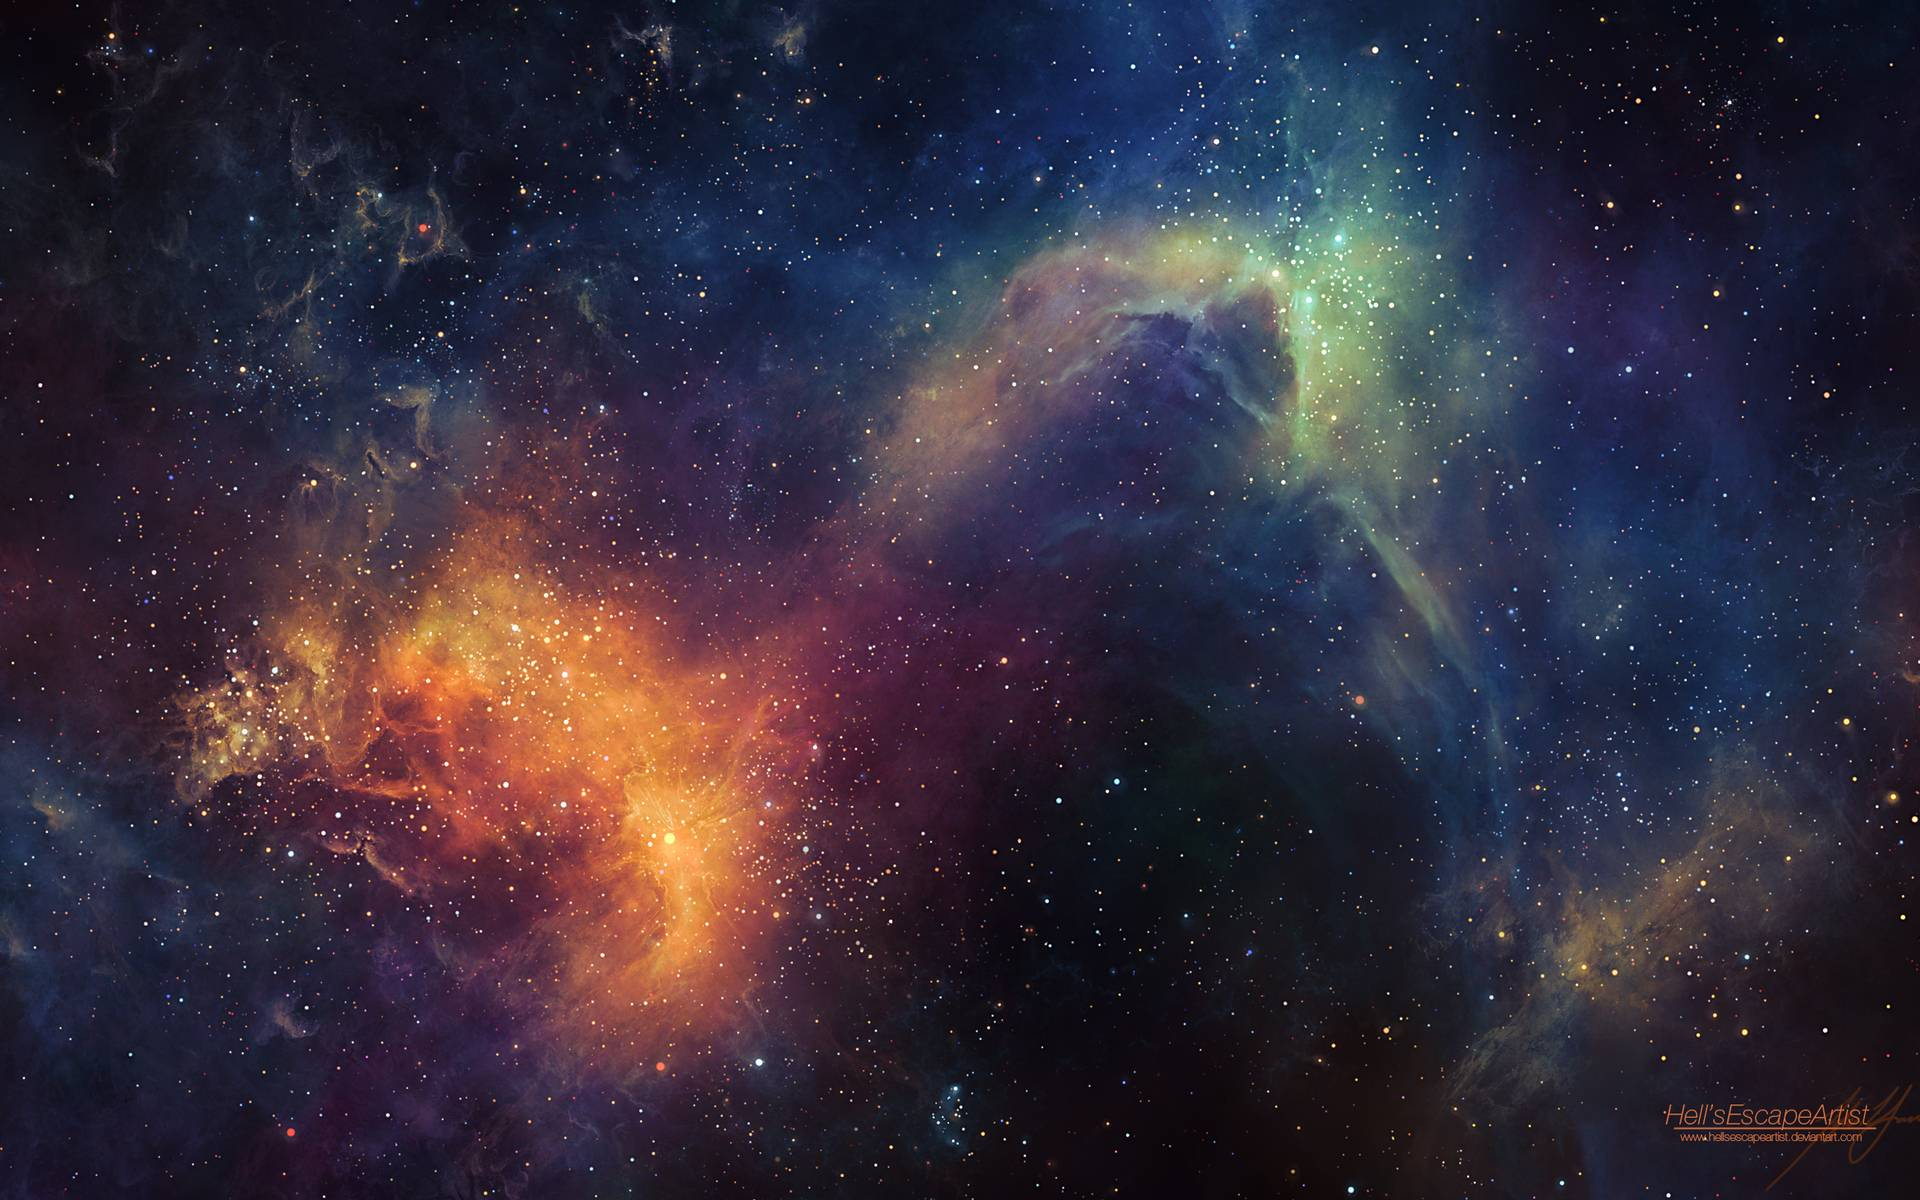 Universe Wallpaper 1080p Hd: HD Universe Wallpapers